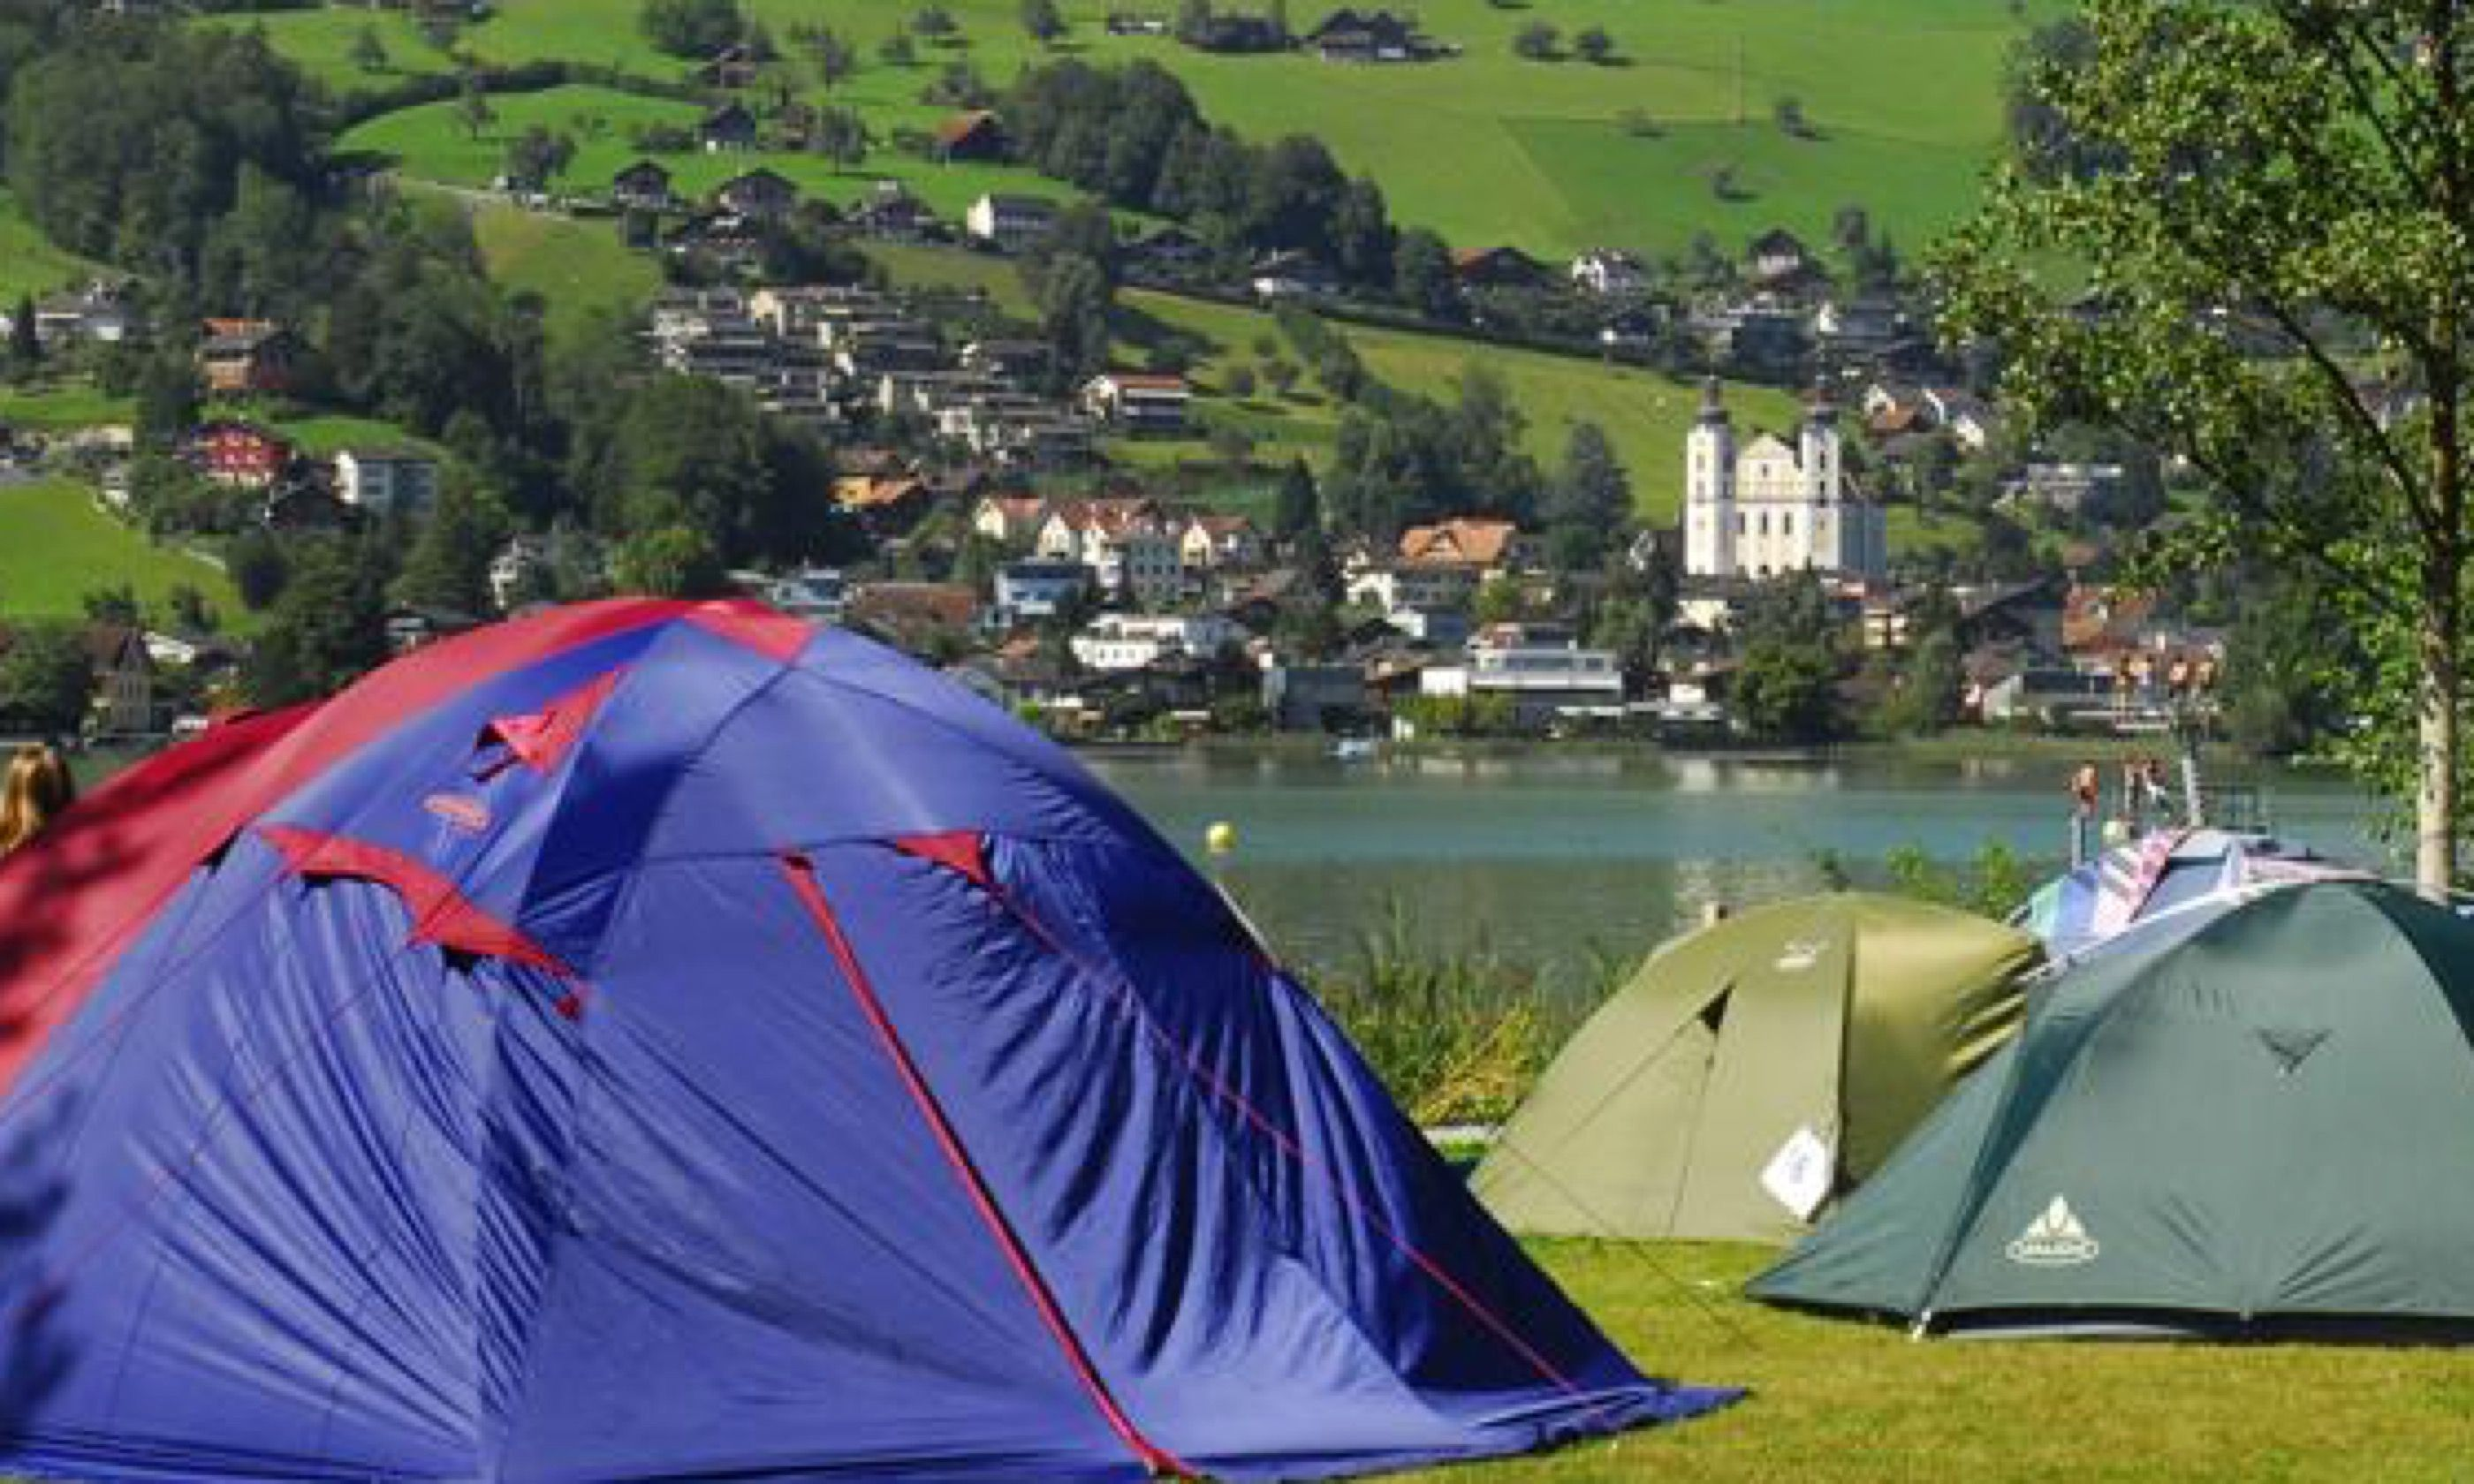 Camping International Lido Luzern (CILL)